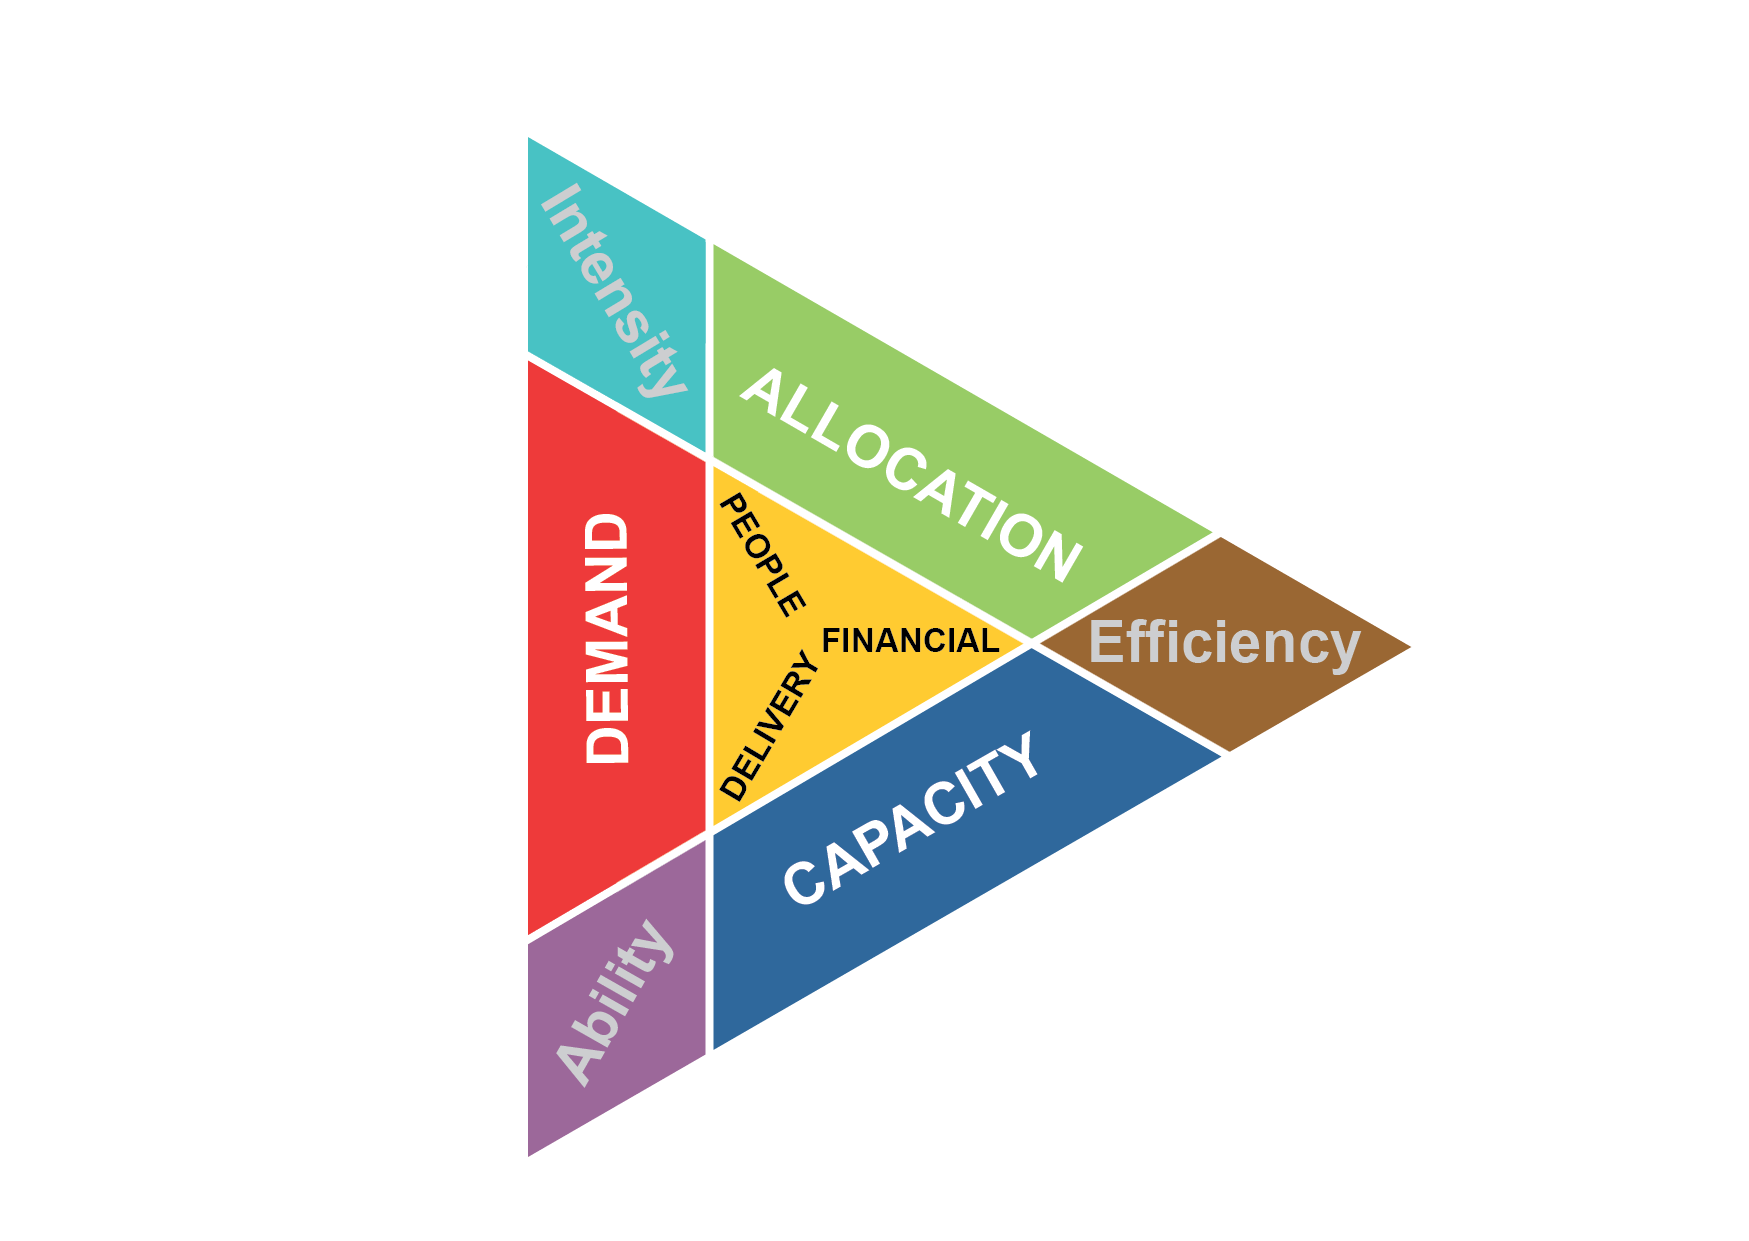 Effort Management Theorem predicts ABILITY, EFFICIENCY, INTENSITY from Demand, Capacity, Allocation